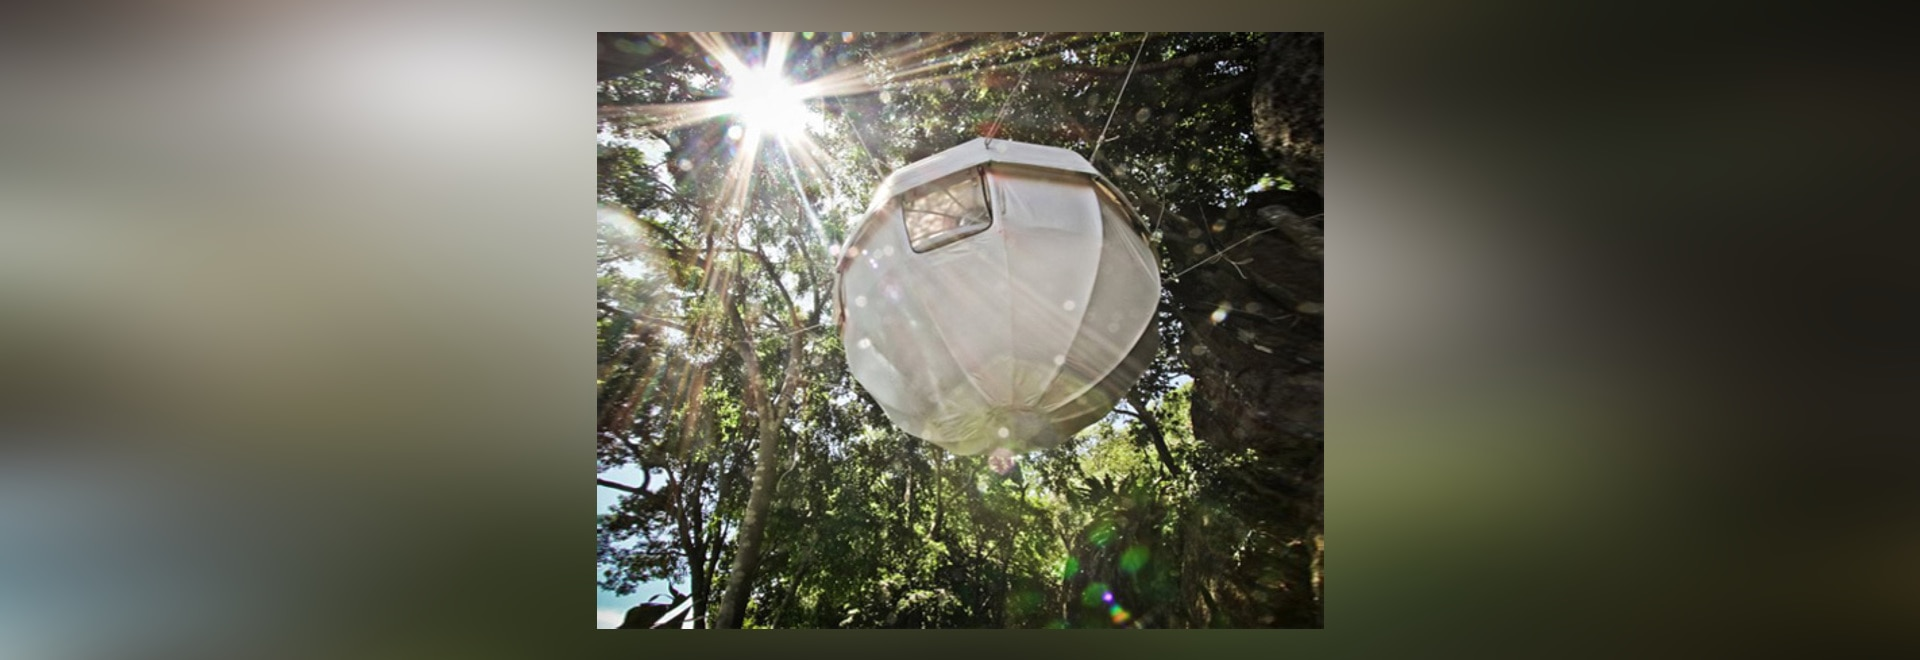 Cocoon Tree cocoon tree: a lightweight, spherical treehouse for sustainable